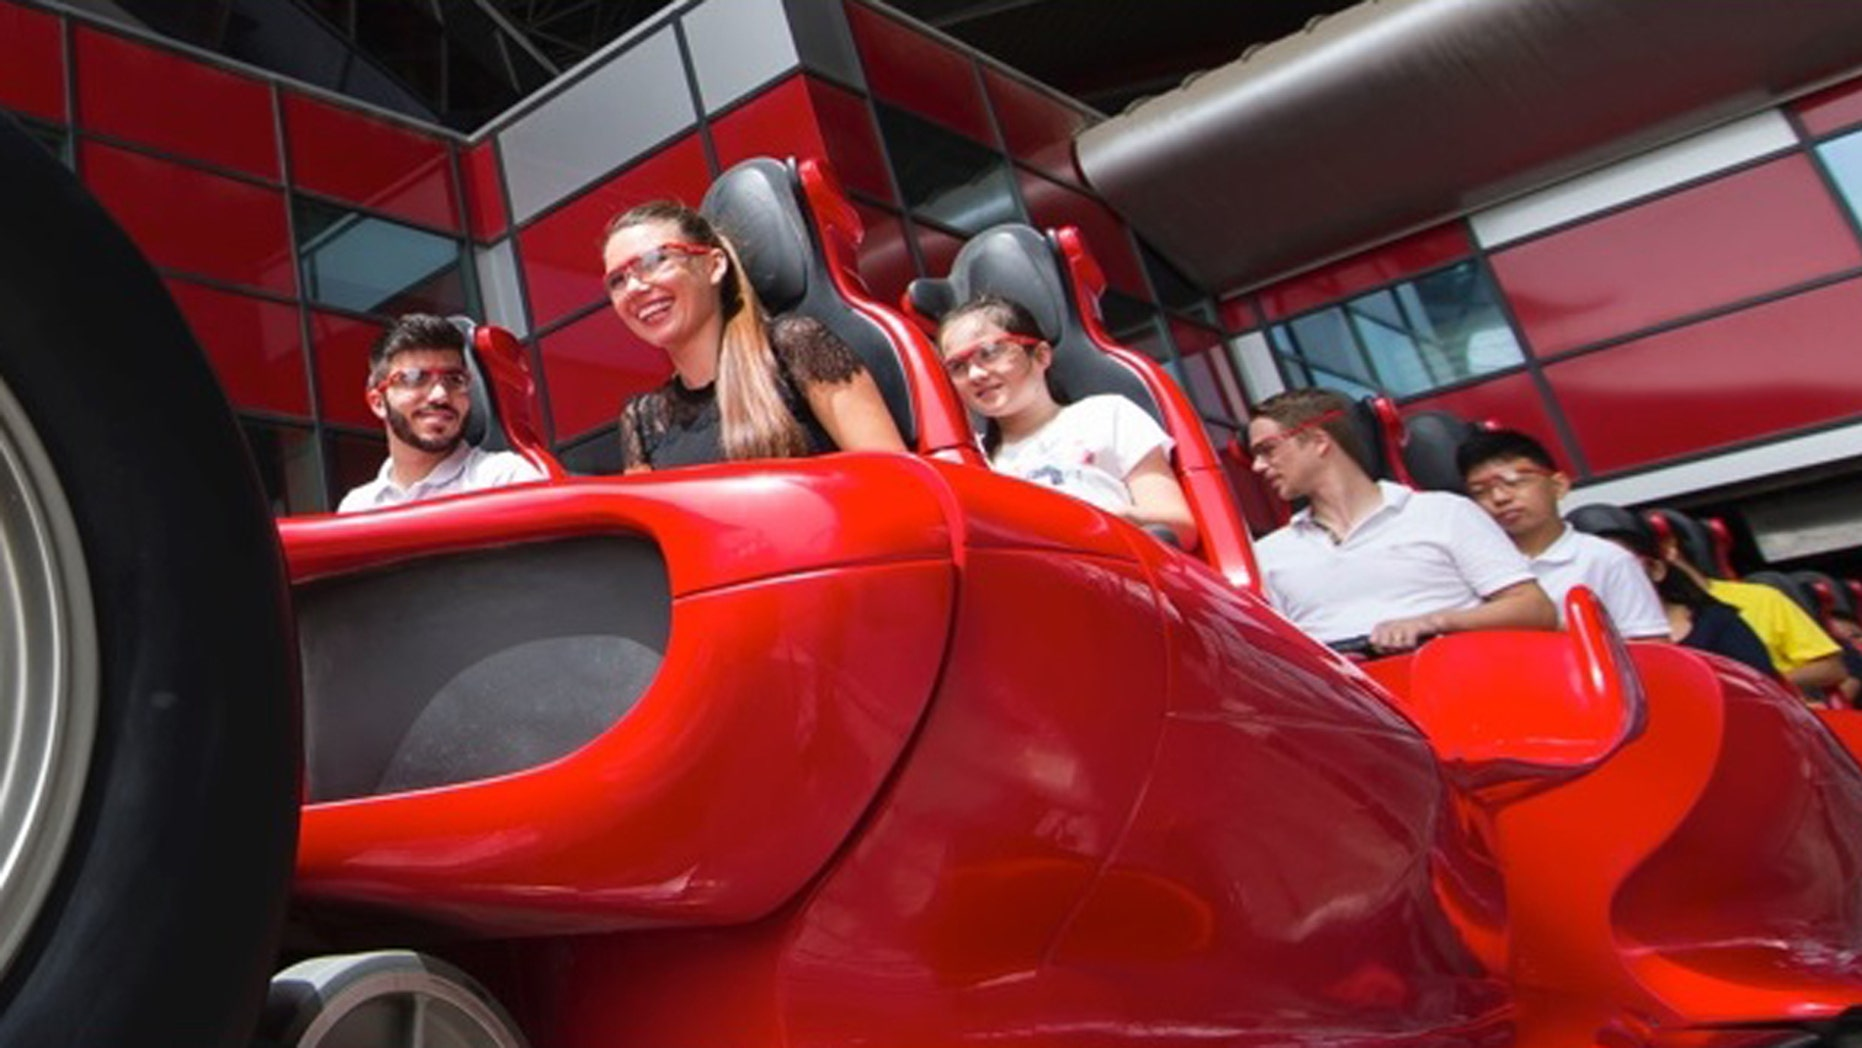 Formula Rossa in Abu Dhabi is the world's fastest roller coaster.